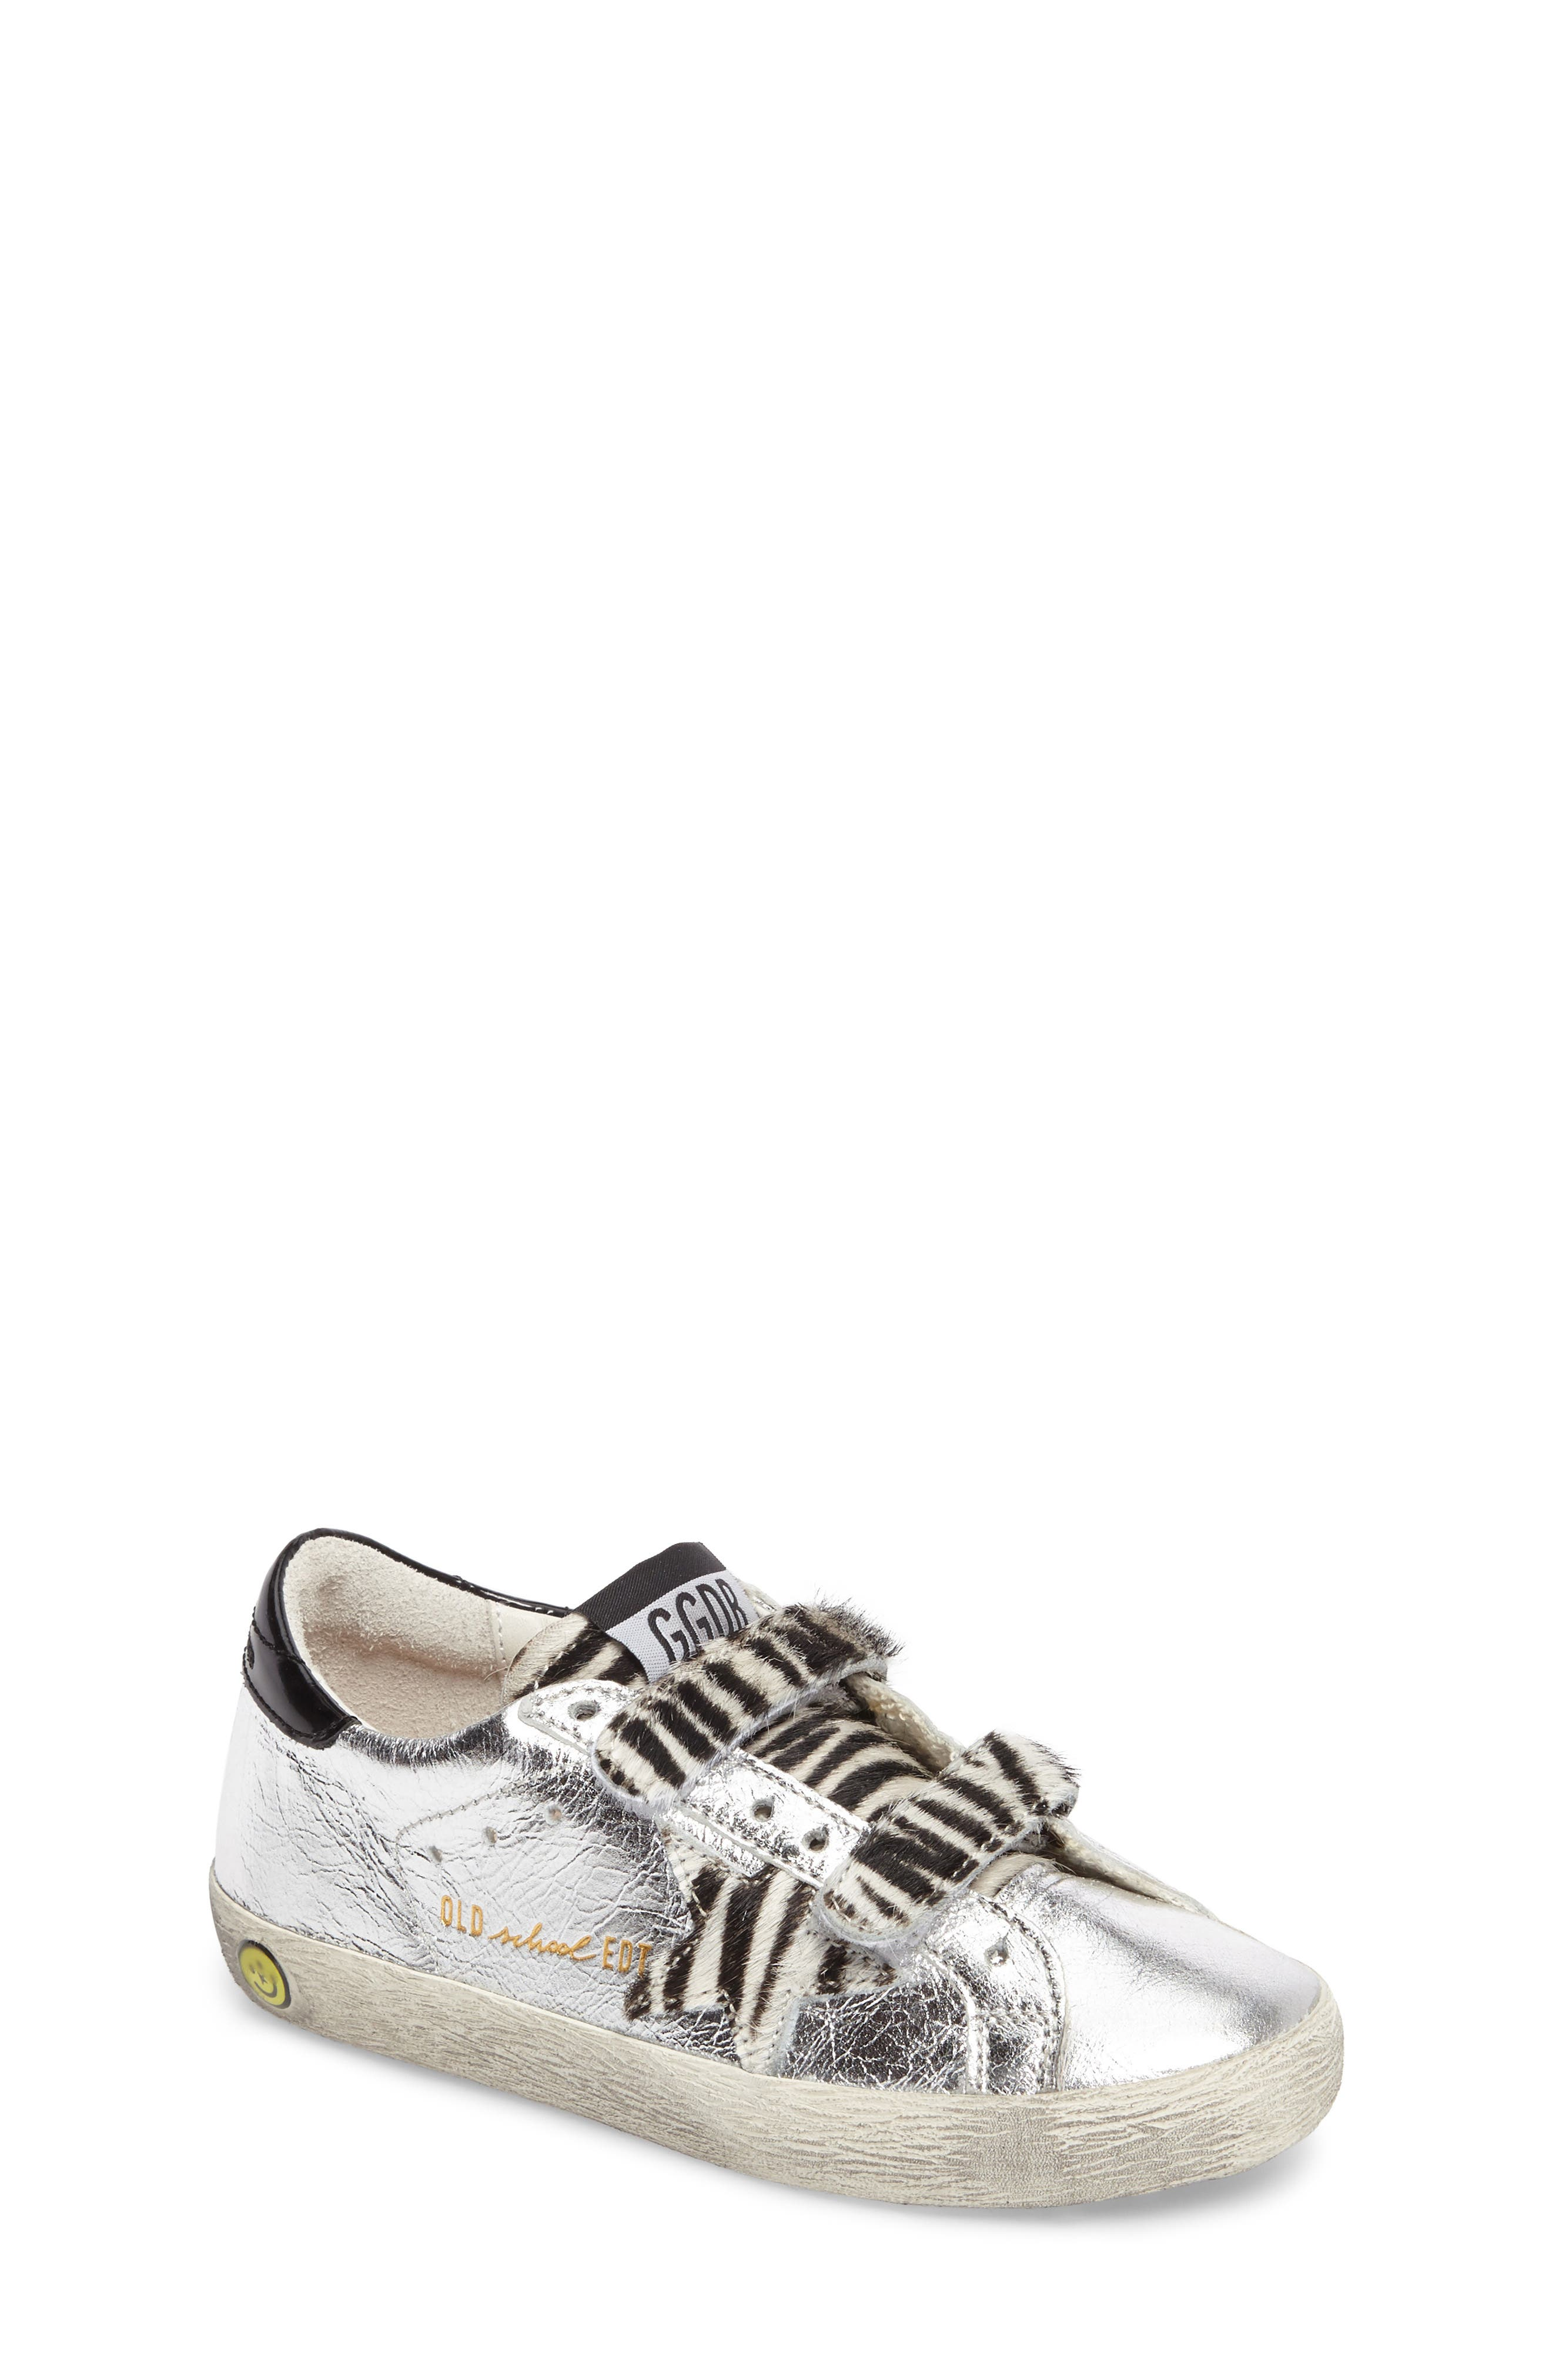 Superstar Old School Sneaker,                         Main,                         color, Silver Leather